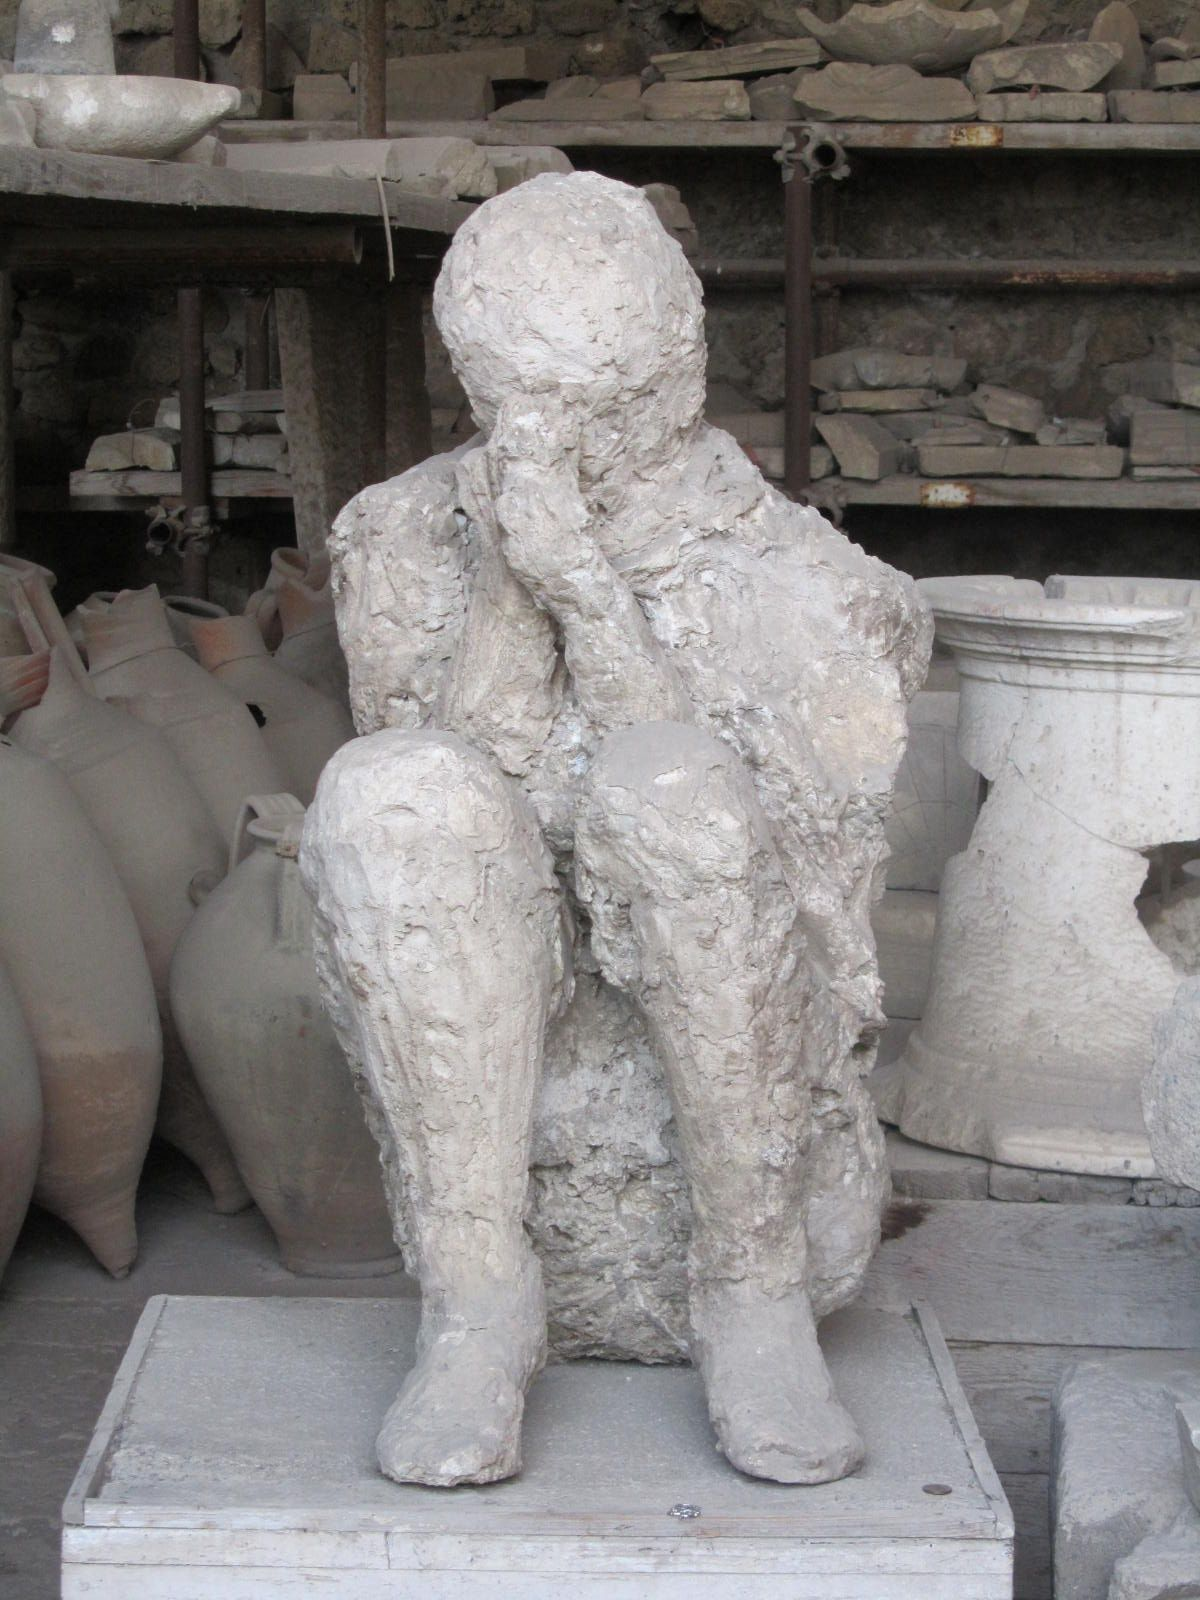 A Plaster Cast Of A Victim Of Pompeii I Have This Exact Same Photol Https Www Facebook Com Micheles Photo Photo Php Fbid 41 Pompeii Pompeii City Ancient